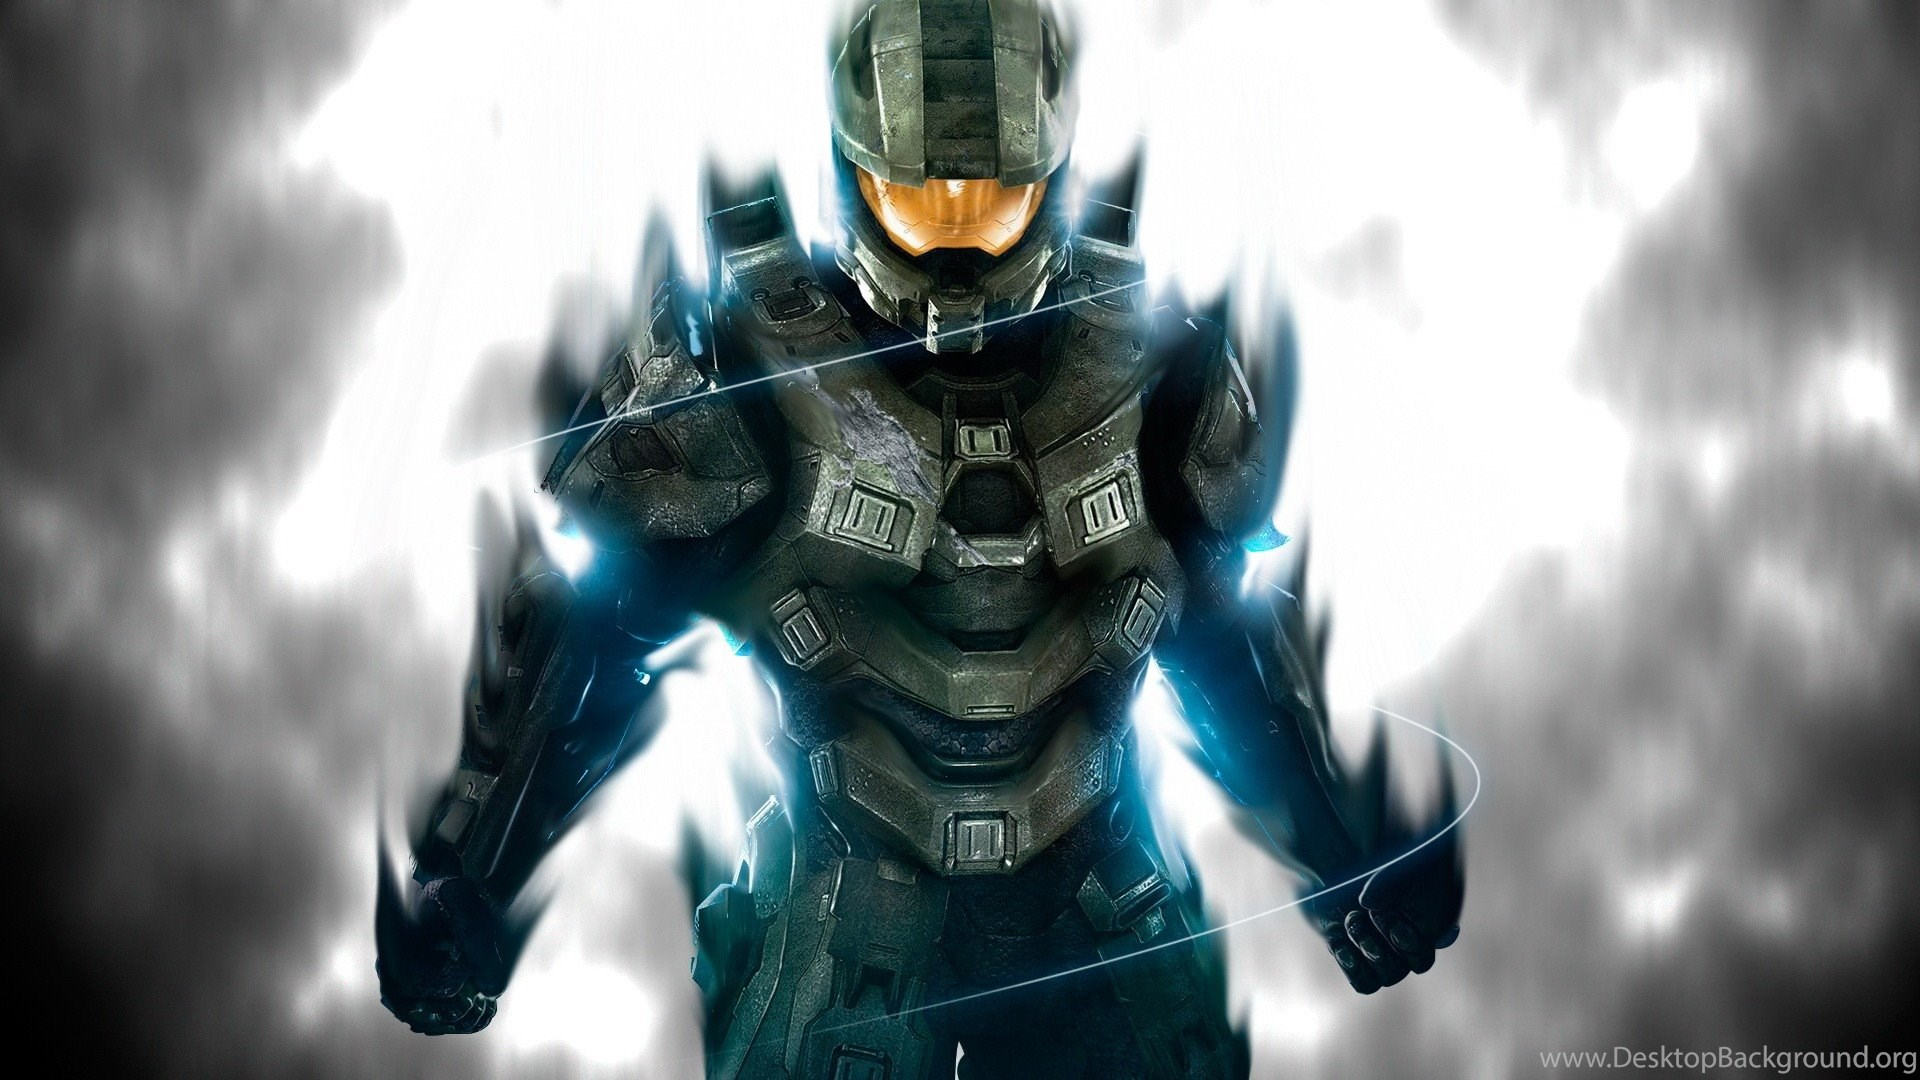 Download The Halo 4 Master Chief Wallpaper Halo 4 Master Chief